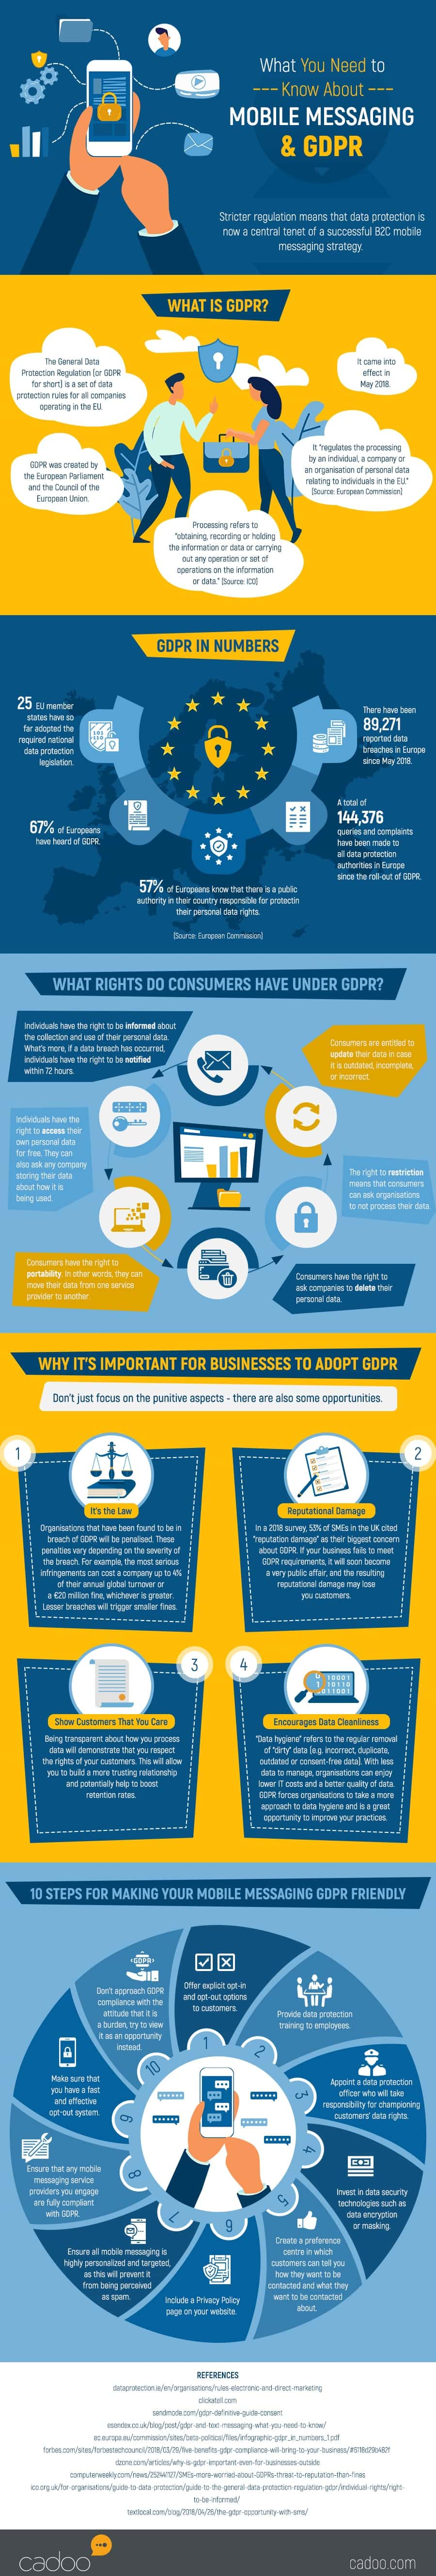 Mobile Messaging & GDPR [Infographic]